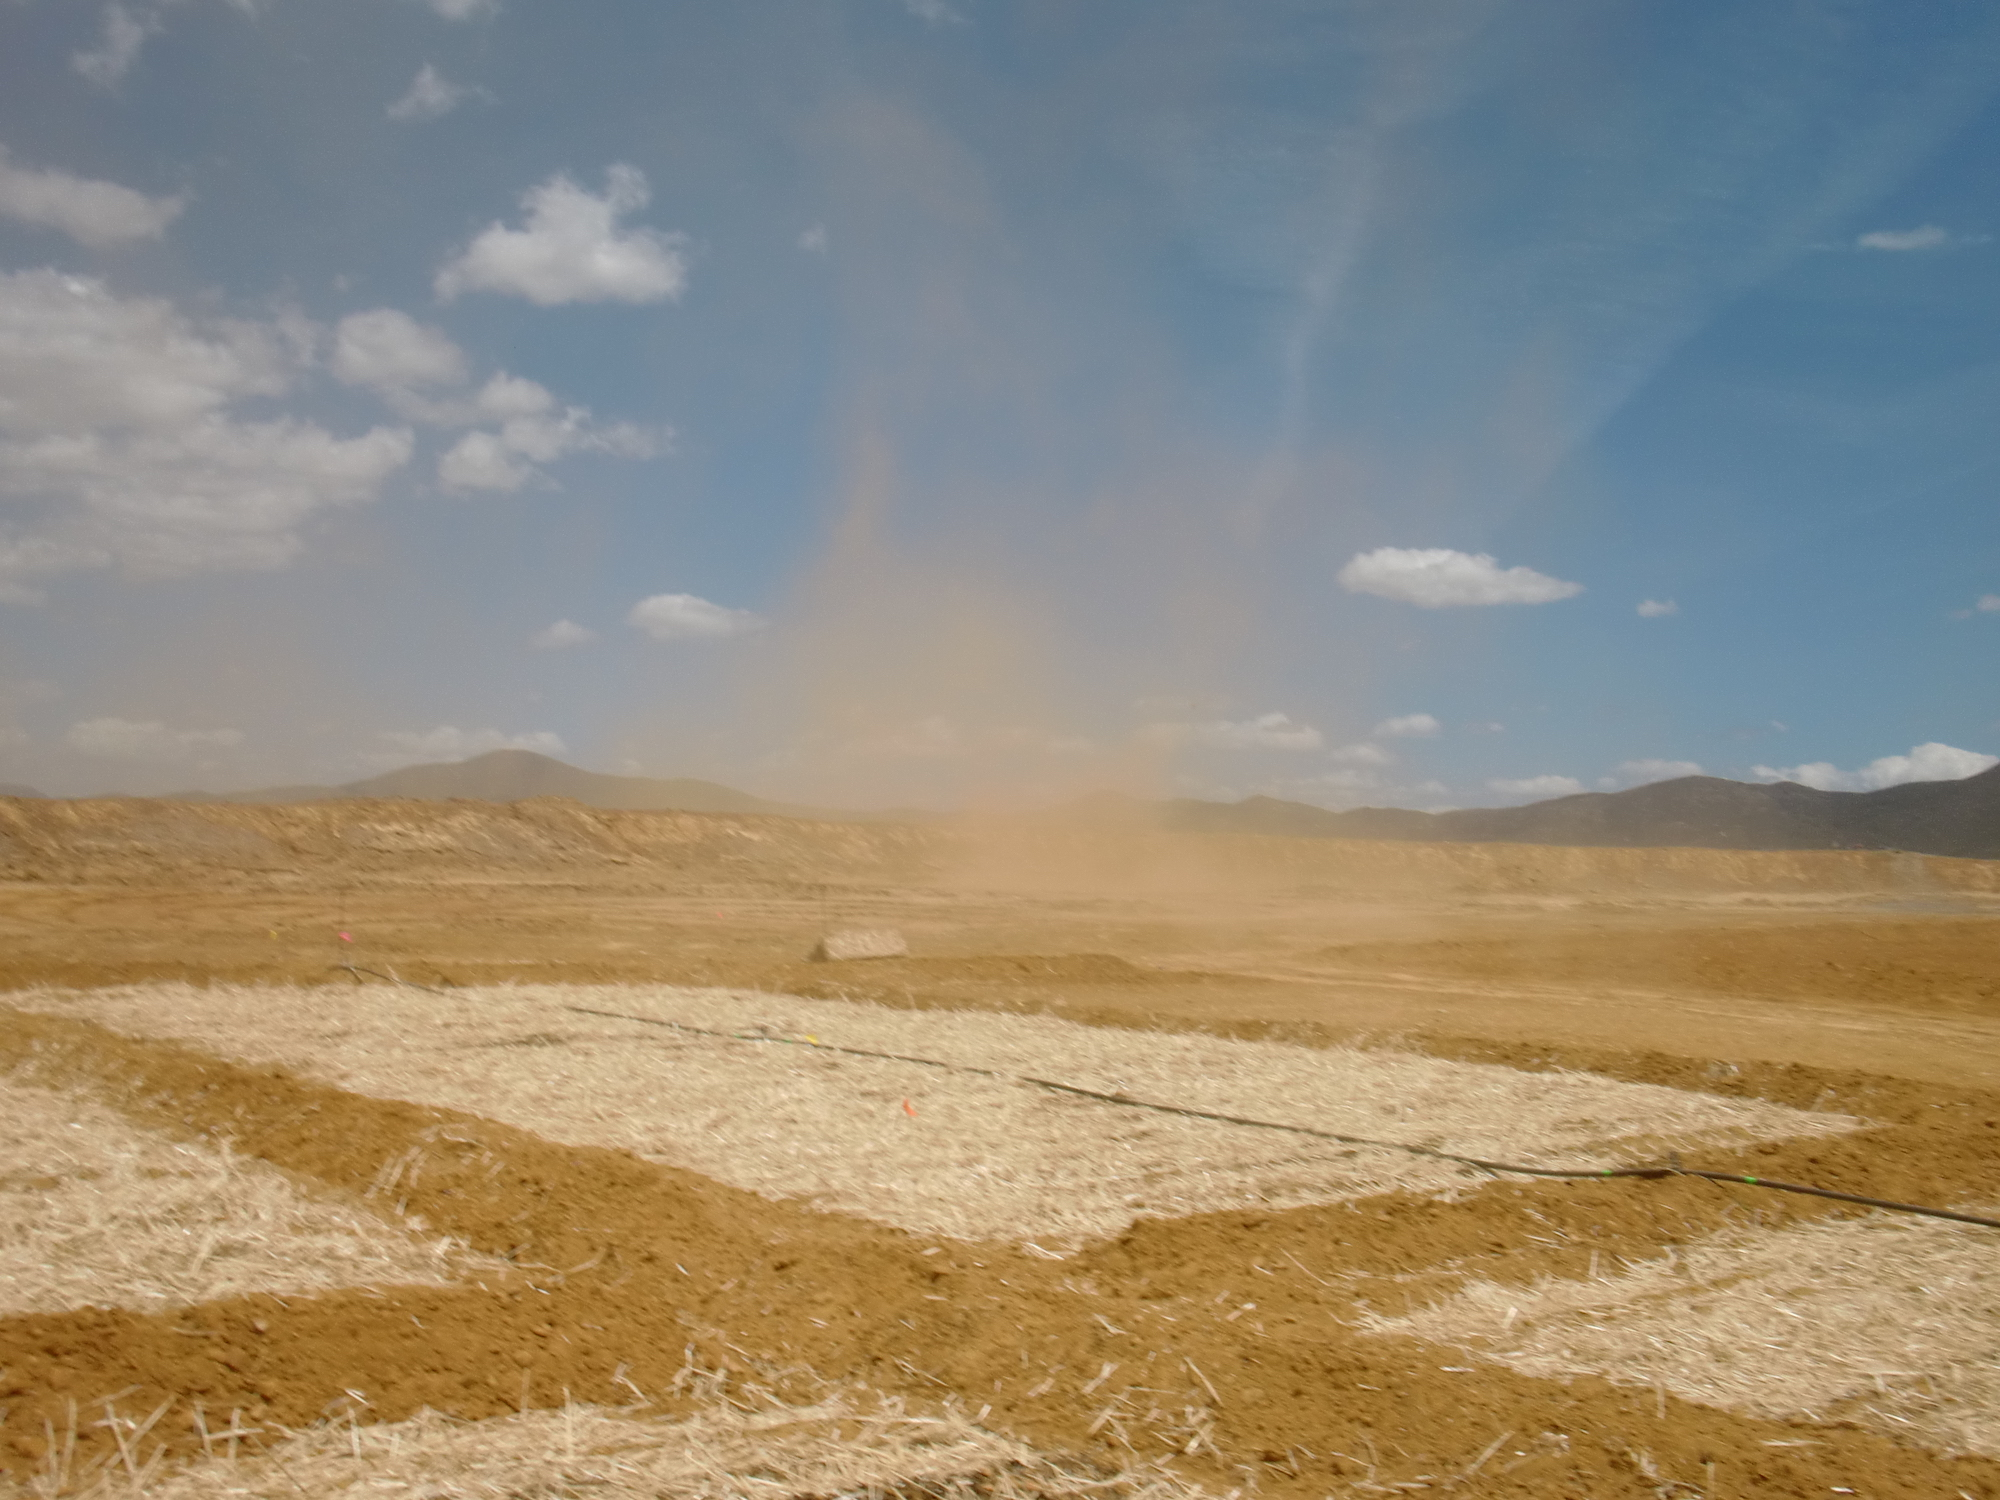 A windy morning showing dust blowing from the tailings site at the Iron King Mine.